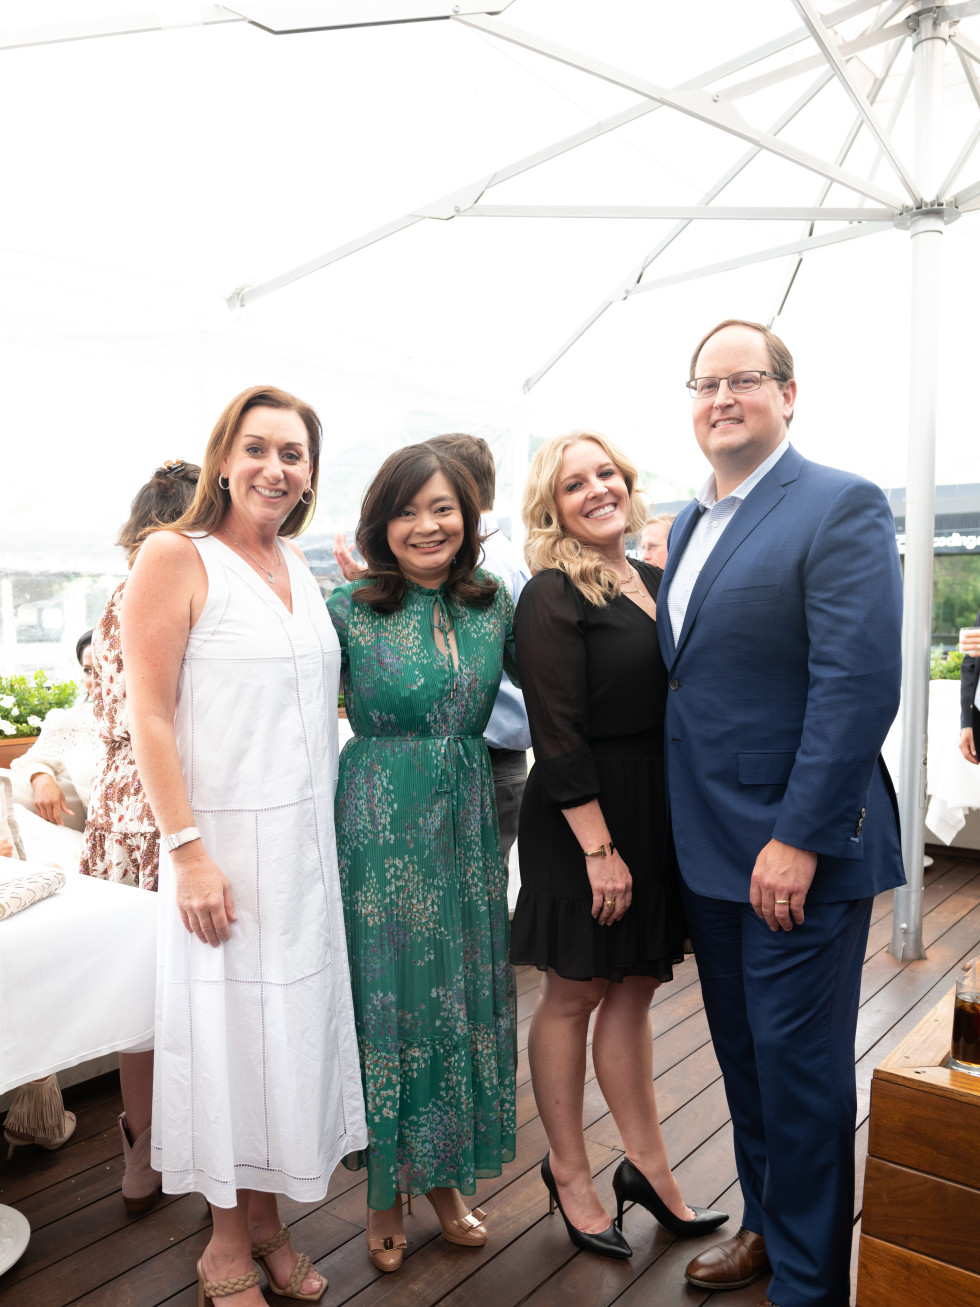 Elevated Connections Memorial Hermann Aspen Amalia Stanton, Erin Aspec, Alison and Greg Haralson